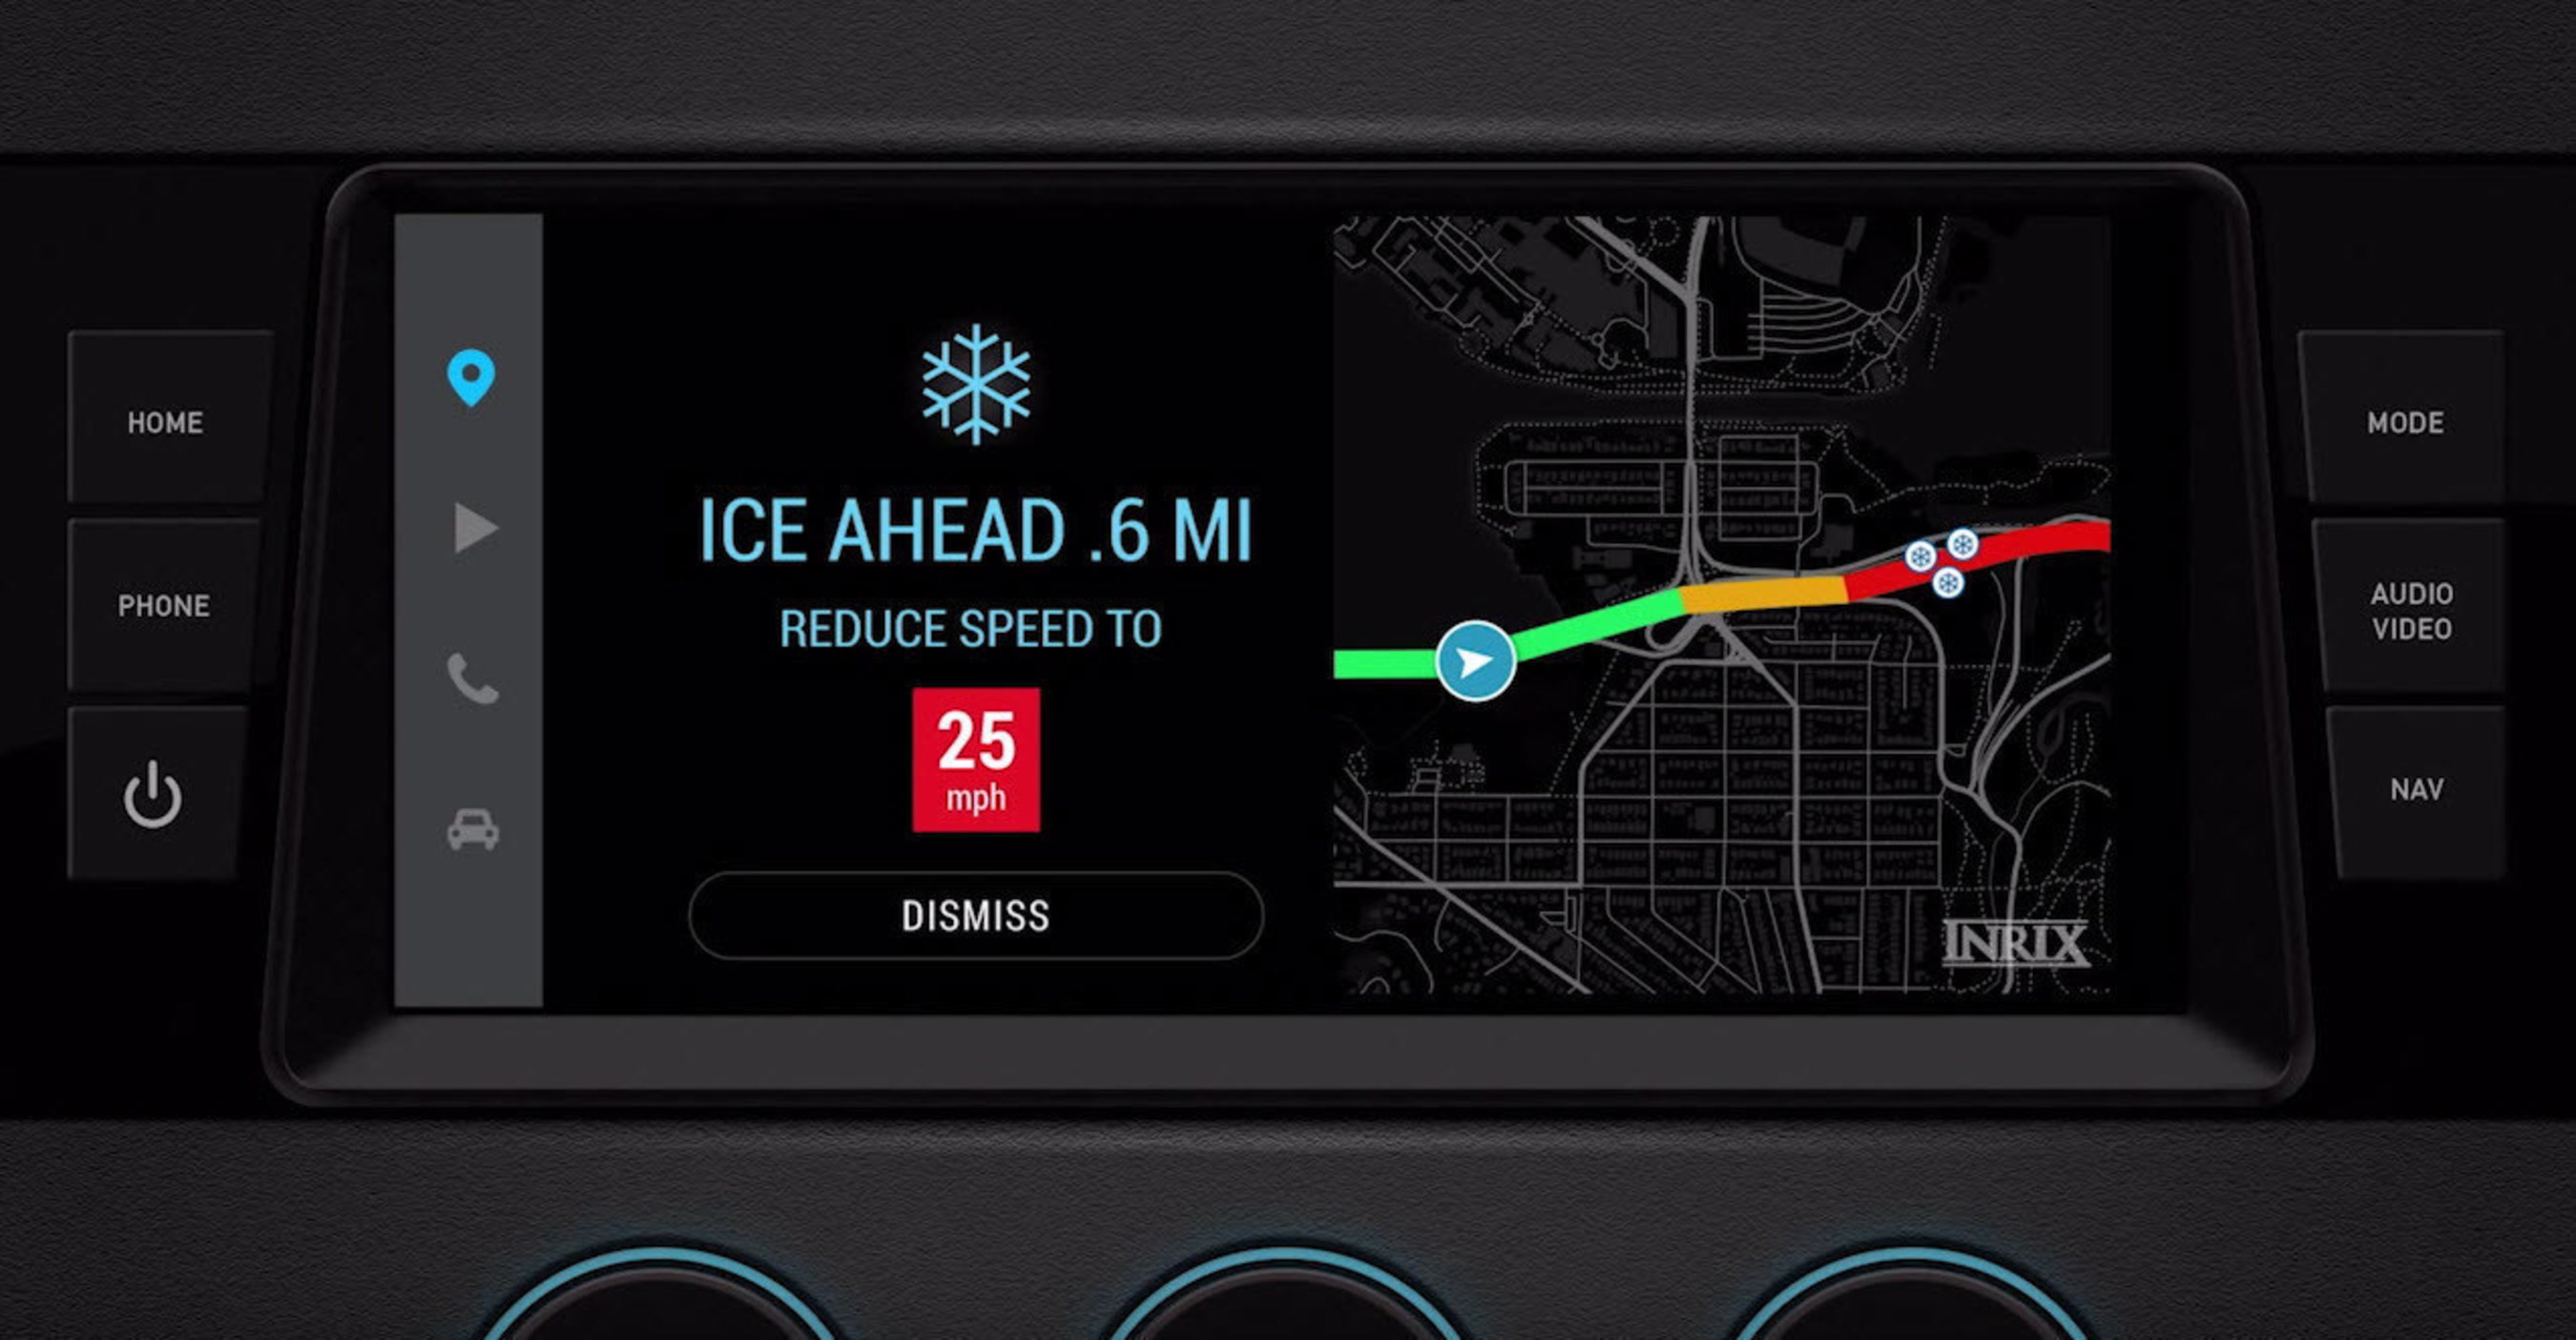 INRIX Road Weather provides critical information on road conditions, including type of precipitation, surface conditions and visibility, among others. It is the first system to use real-time data from connected vehicles to alert other drivers of ...